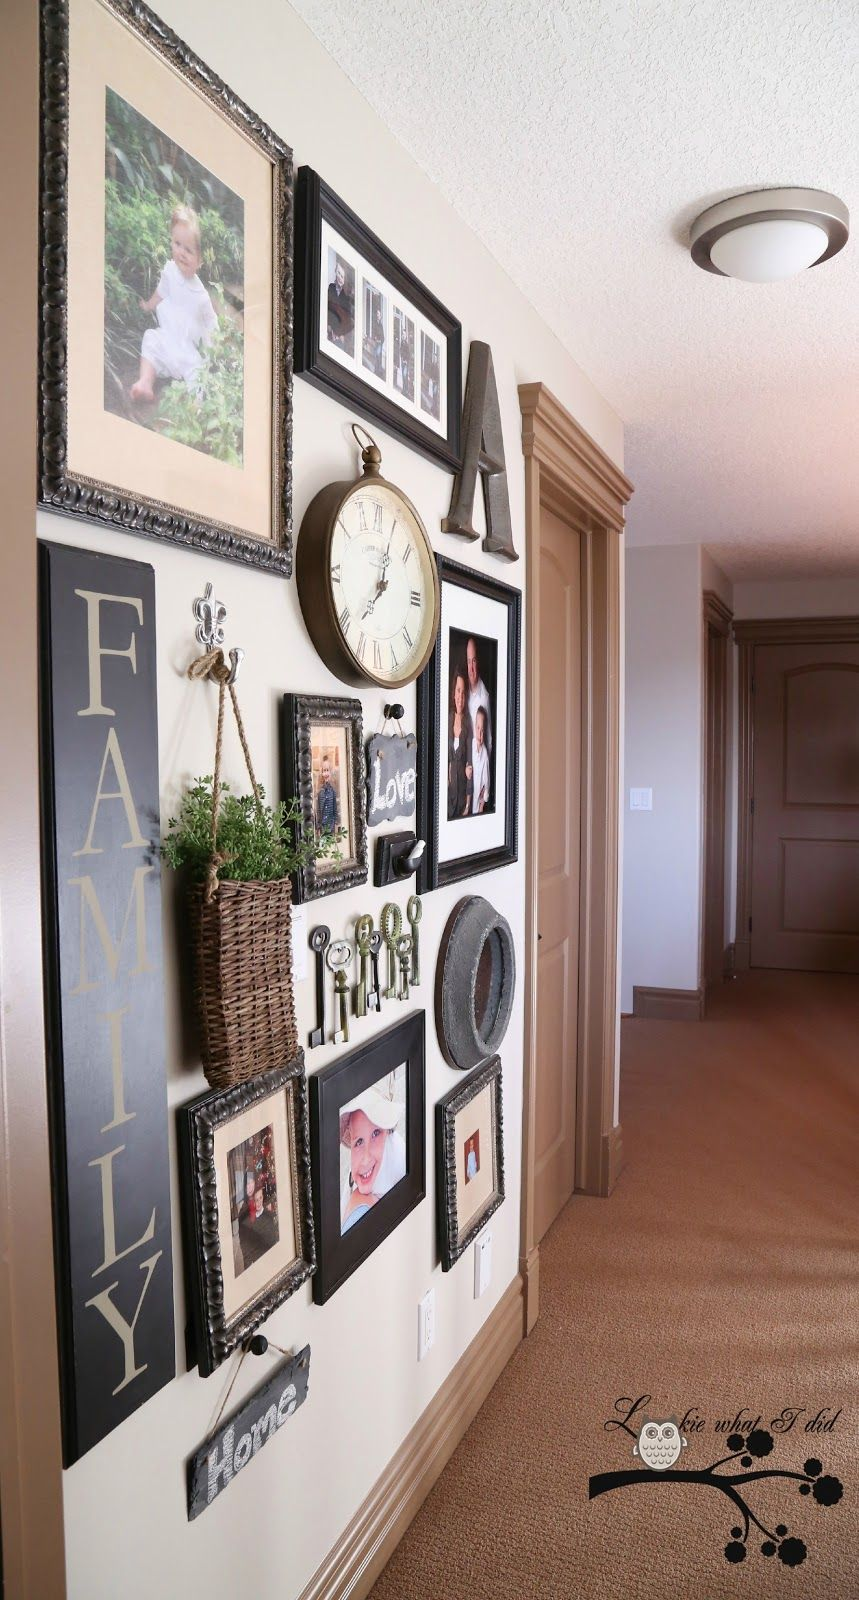 Gallery Wall Ideas I Like The Large Vertical Family Sign A Mr And Mrs Interior Best Design Guide Atom